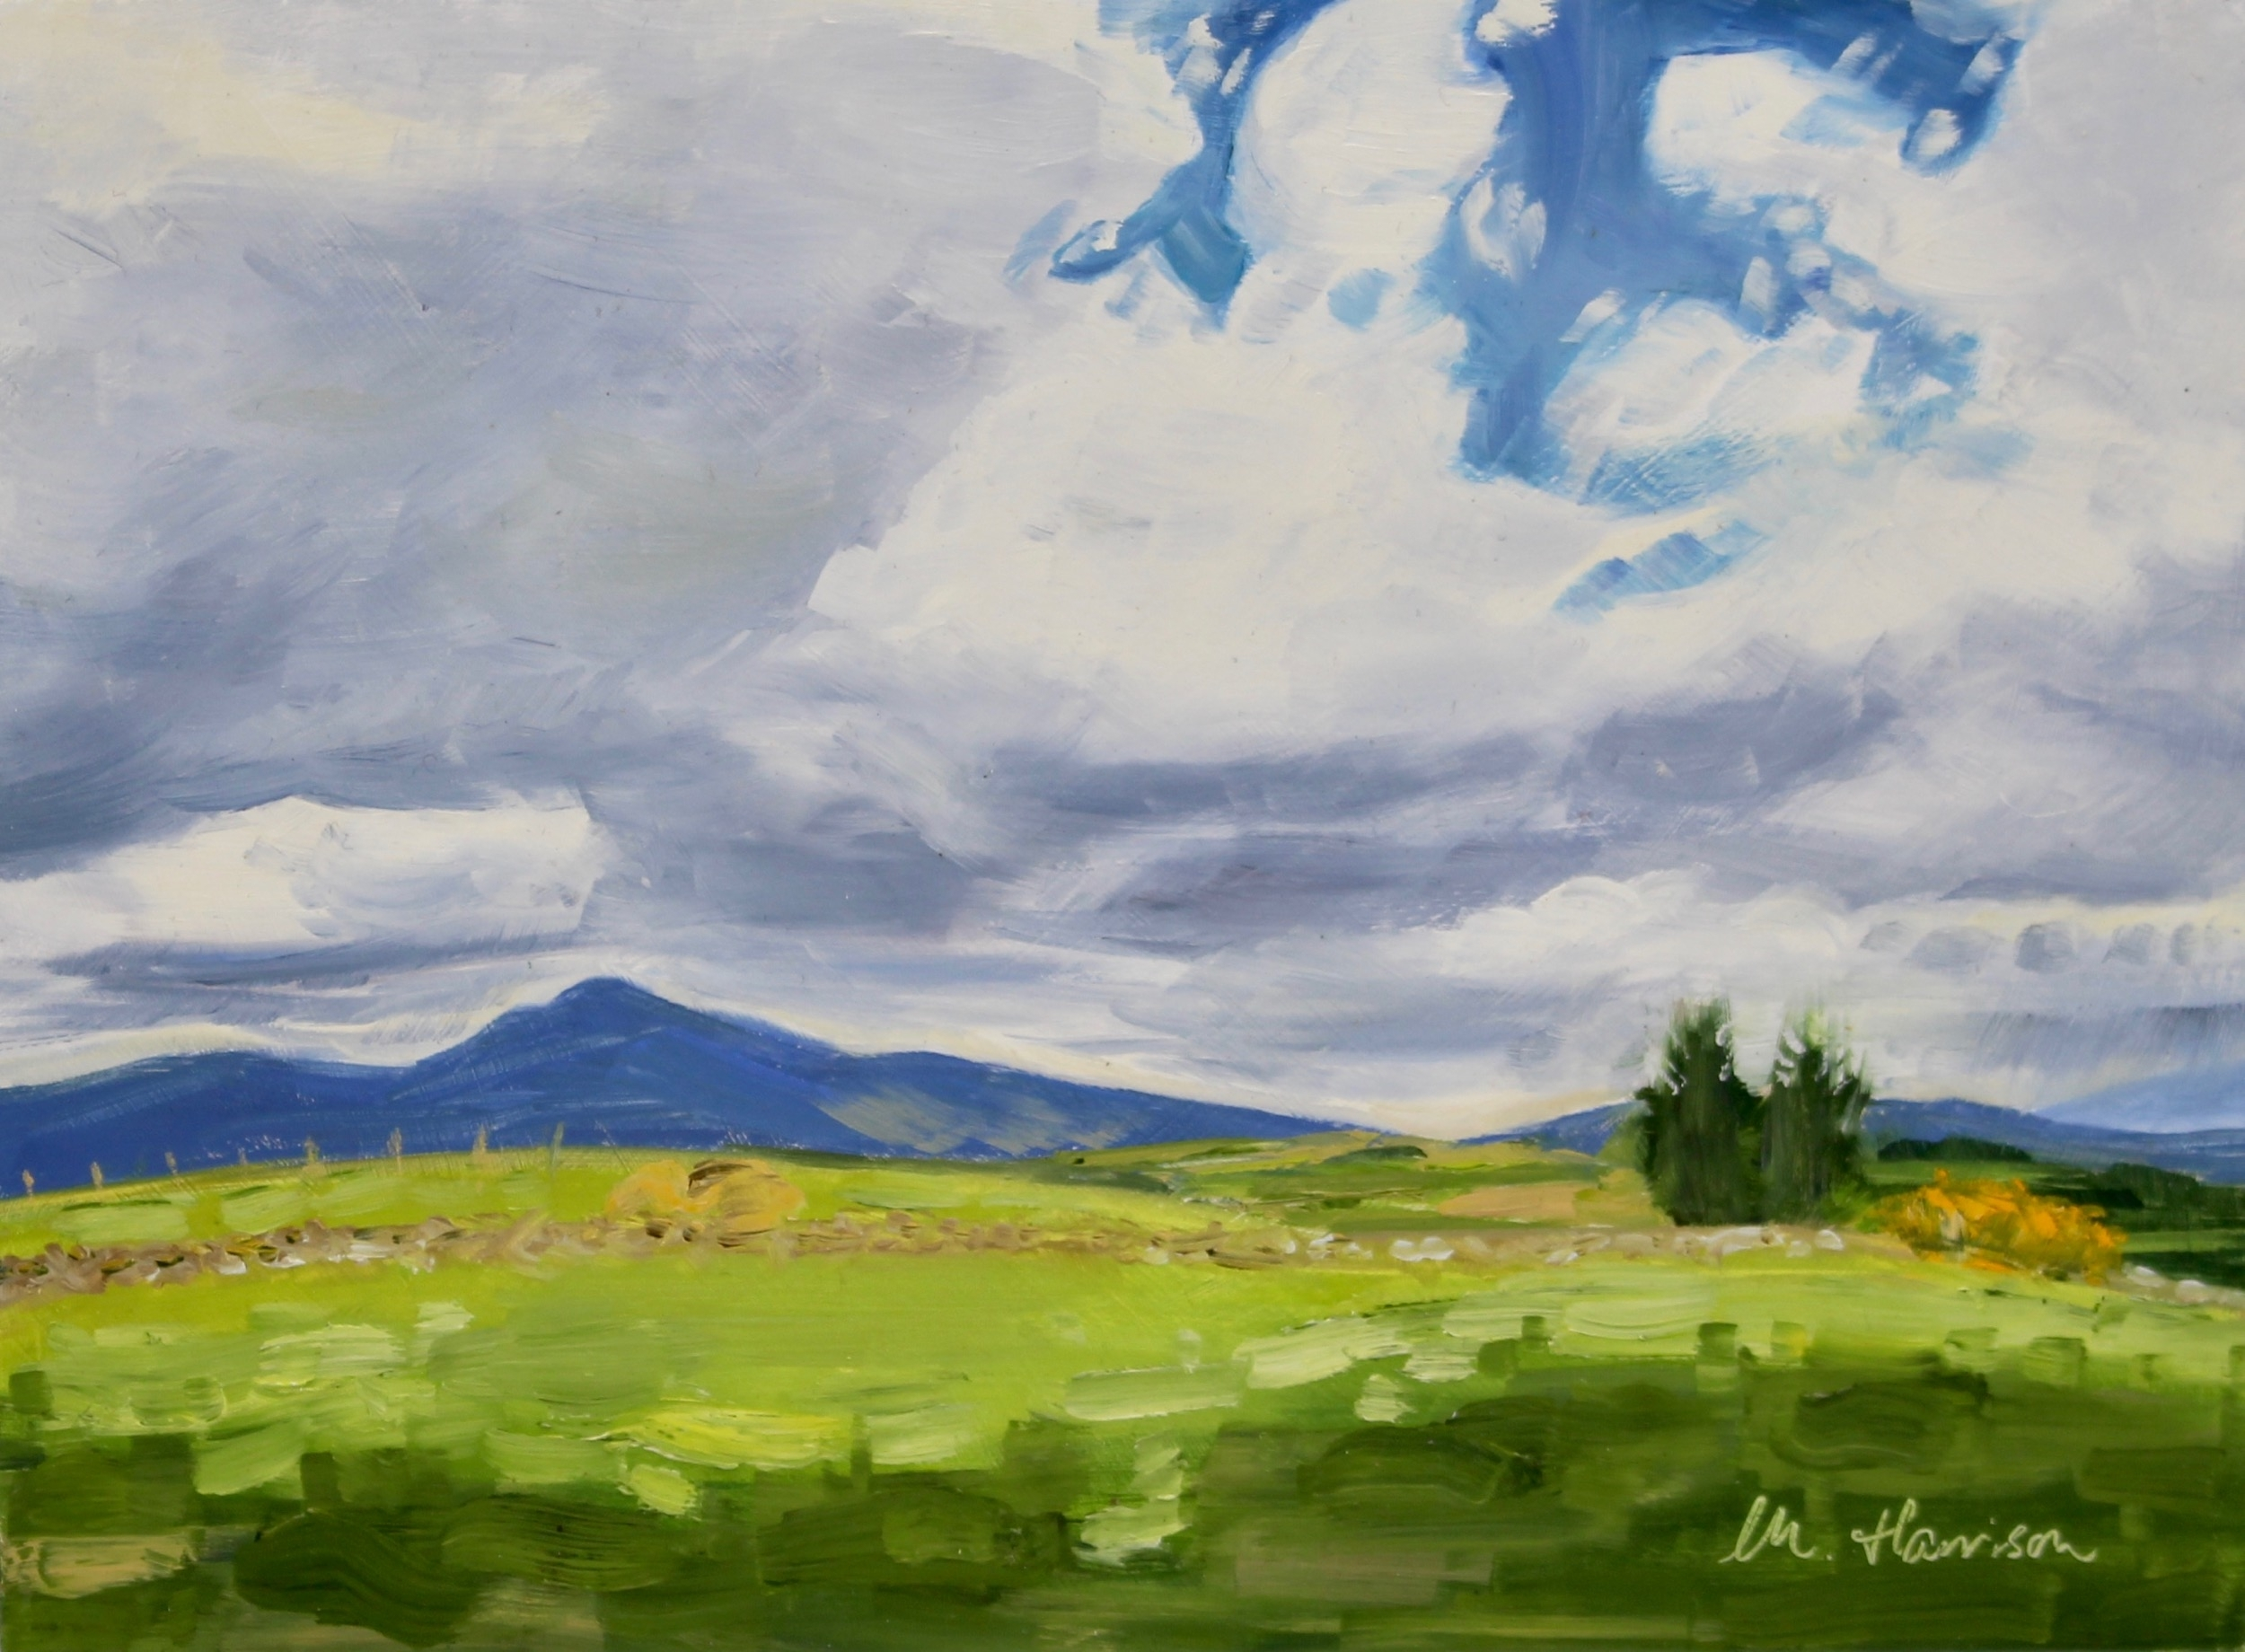 'Fleeting Sunlight by Bennachie' (oil on panel, 9x12 inches)   I painted this picture  alla prima  from a photo reference.  It shows the majestic hill 'Bennachie', which dominates the Aberdeenshire countryside near Inverurie where I grew up.  I have kept this painting in my private collection given that it is a view I love.